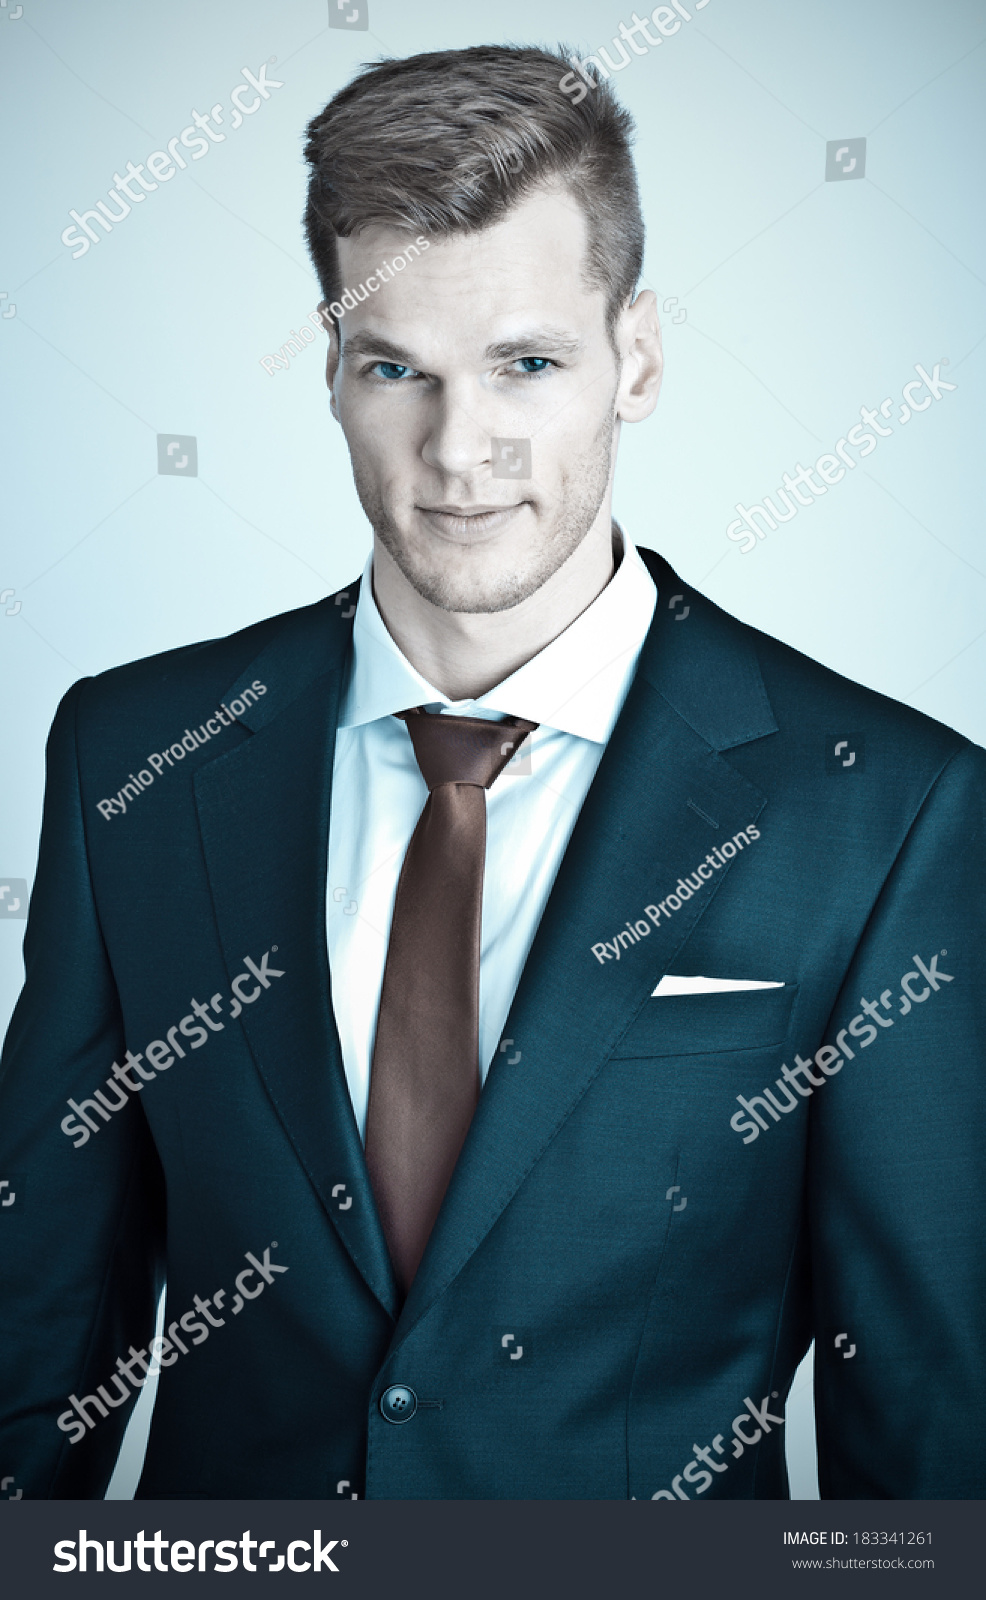 Cheerful young businessman portrait #183341261